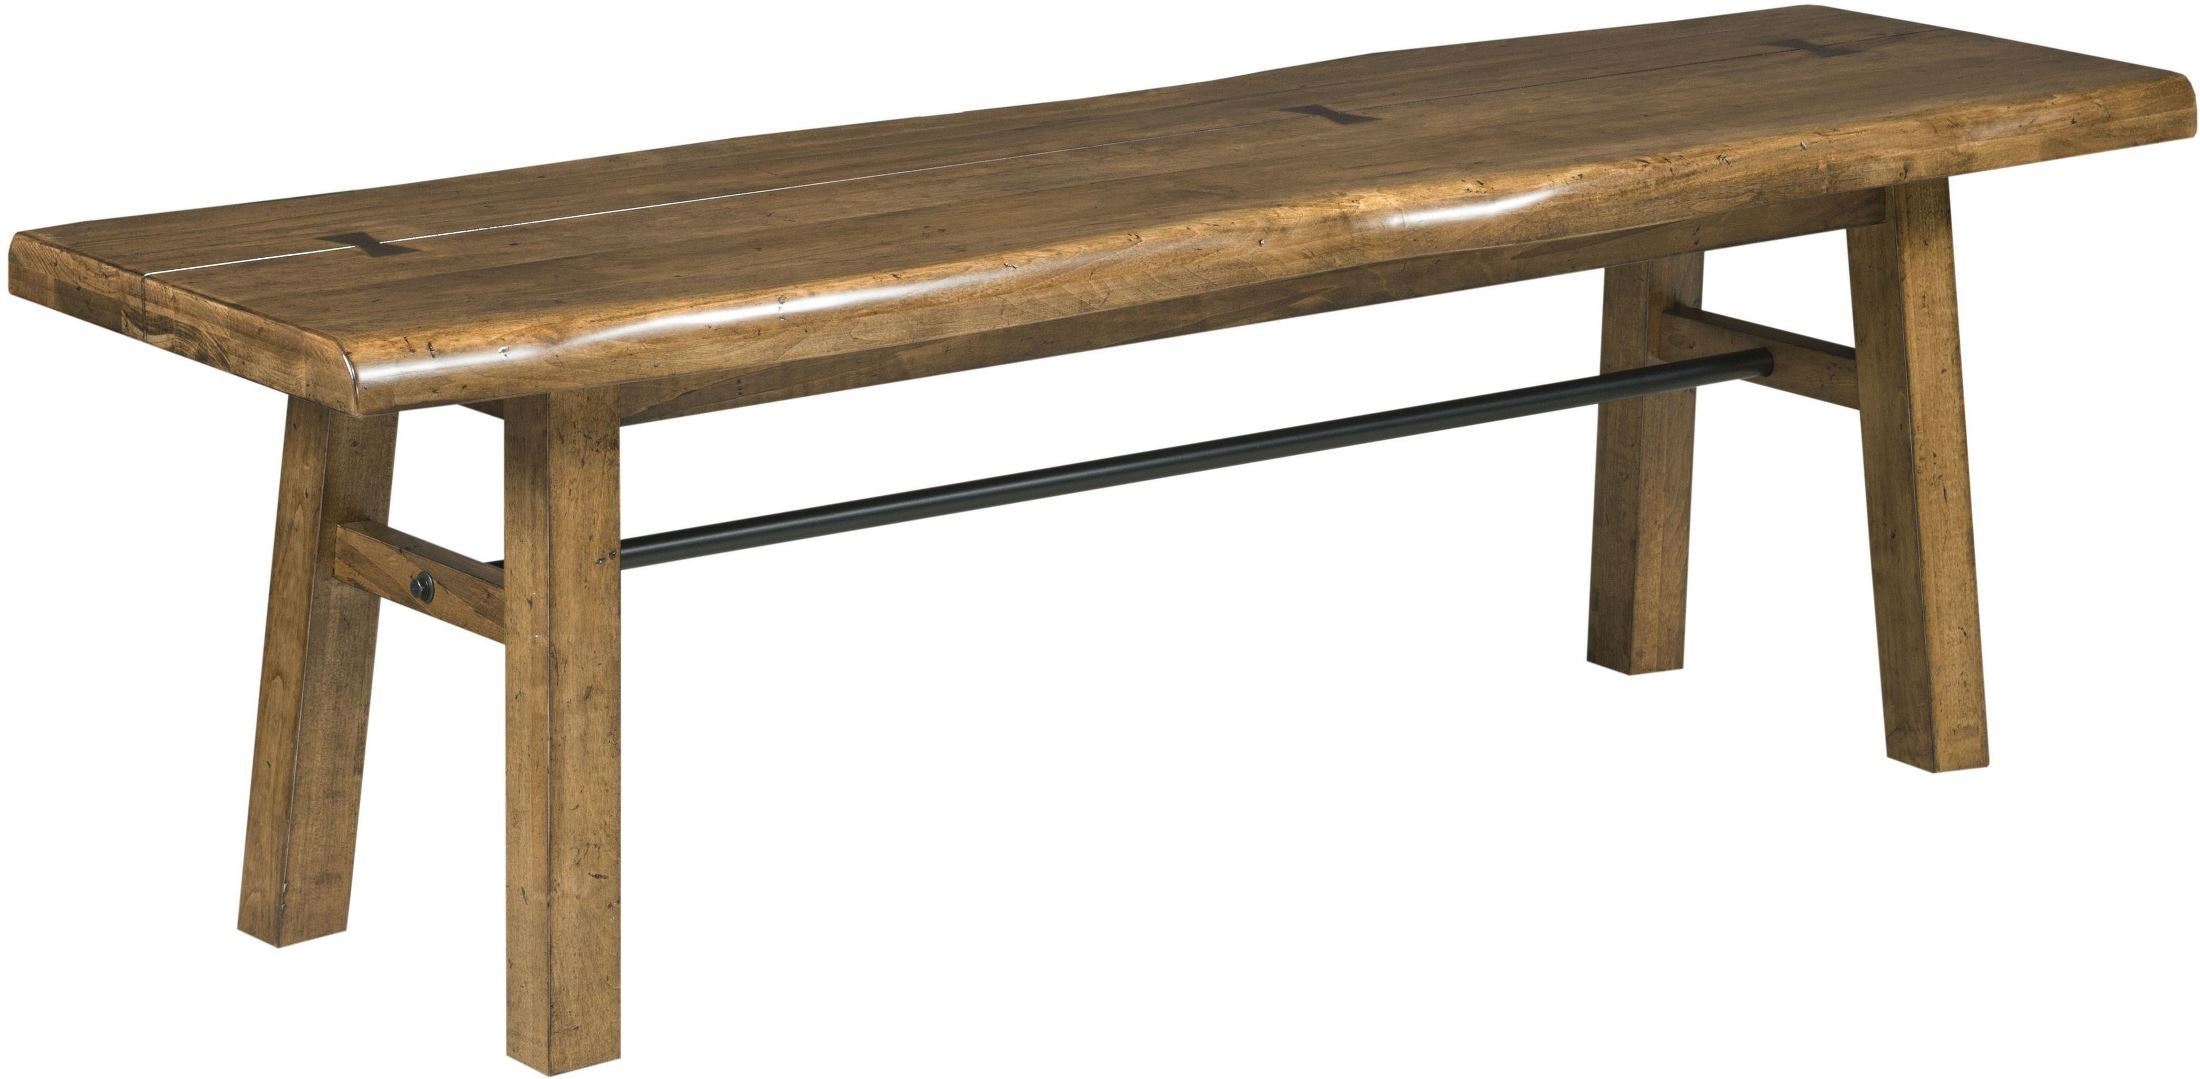 Traverse Brown Bench From Kincaid Furniture Coleman Furniture